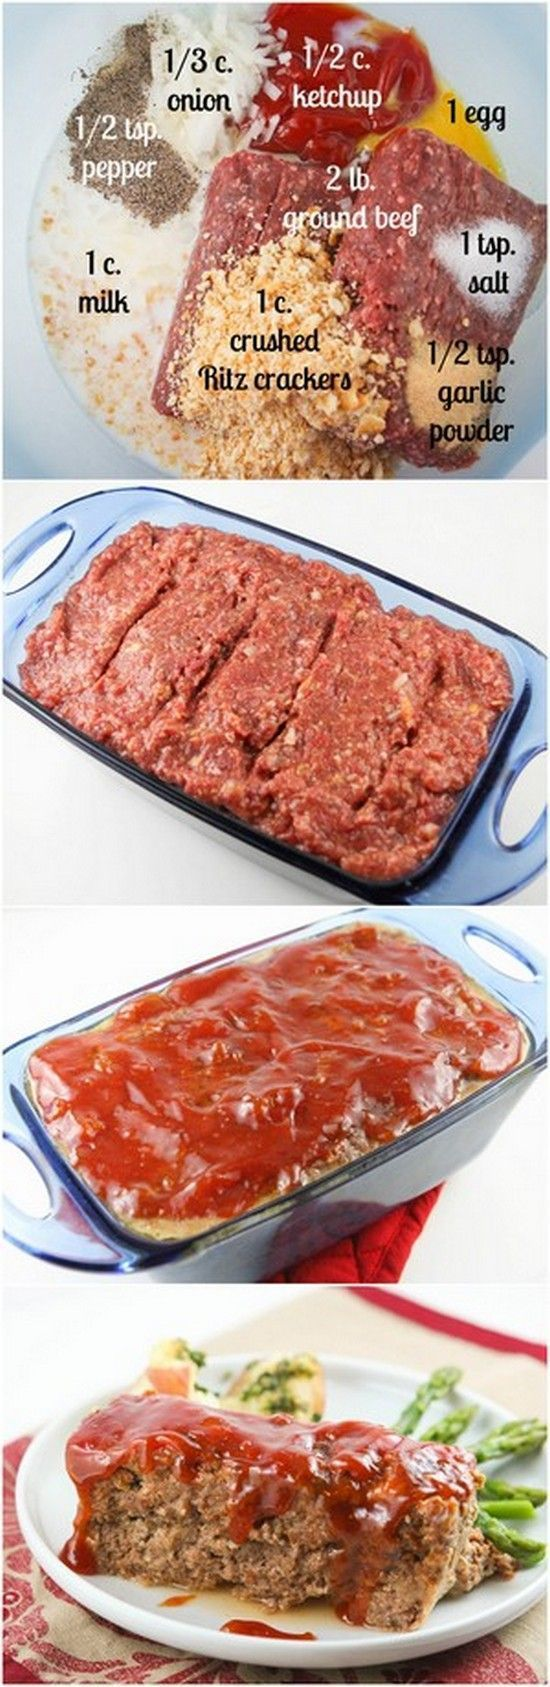 2 Lb Meatloaf Recipe With Milk : meatloaf, recipe, Meatloaf, Recipe, Dreams!, Recipes,, Food,, Cooking